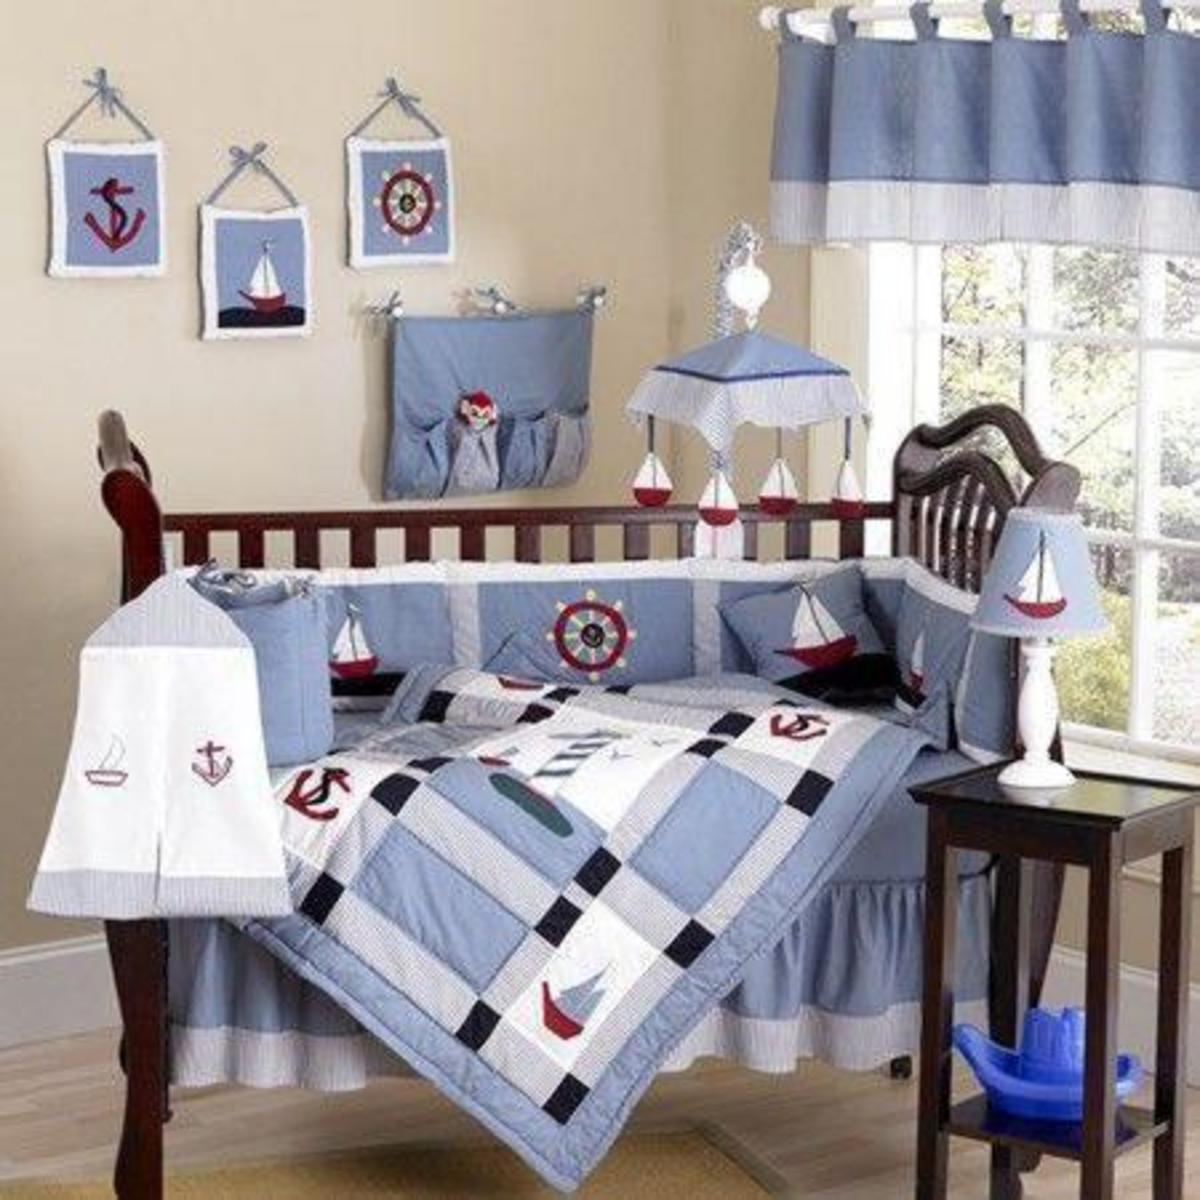 Baby Crib Bedding Set in Nautical Theme